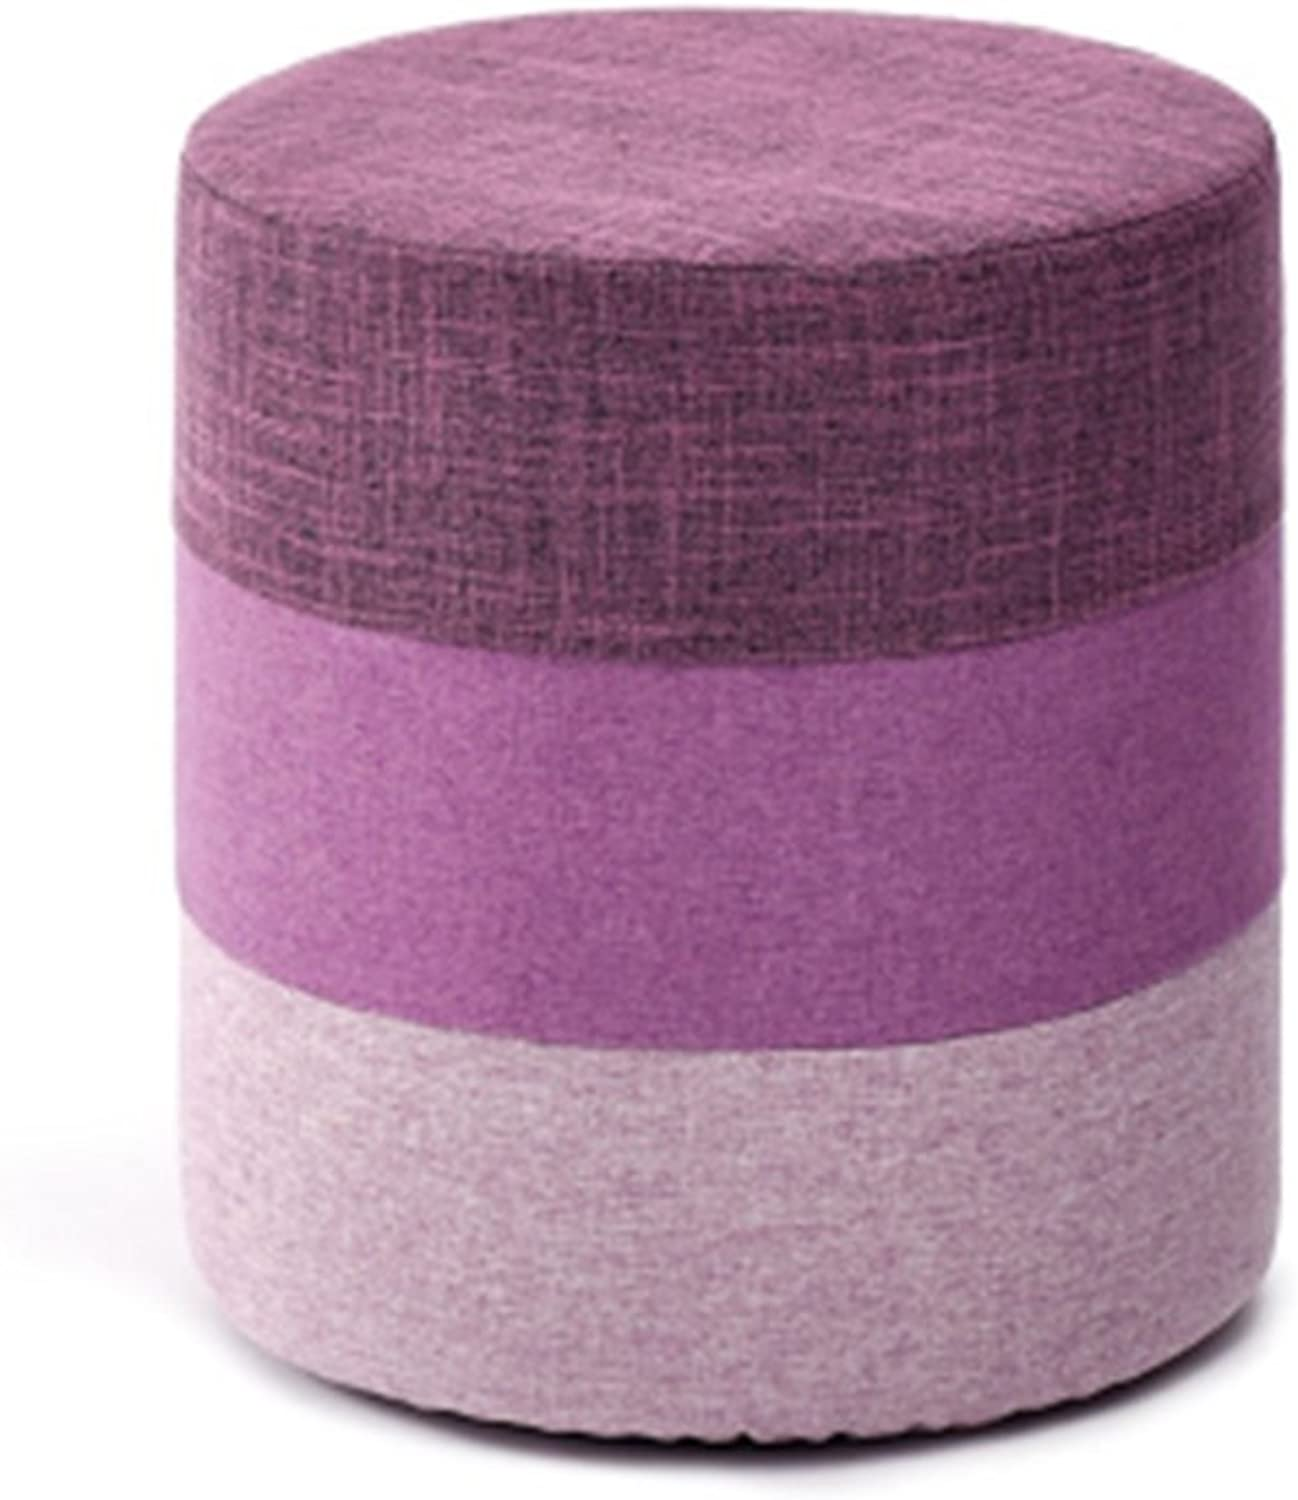 DQMSB Fashion Fabric Stool Round Stool Sofa Stool Adult Bench Stool Creative Storage Stool Change shoes Stool Foot Stool (color   B)